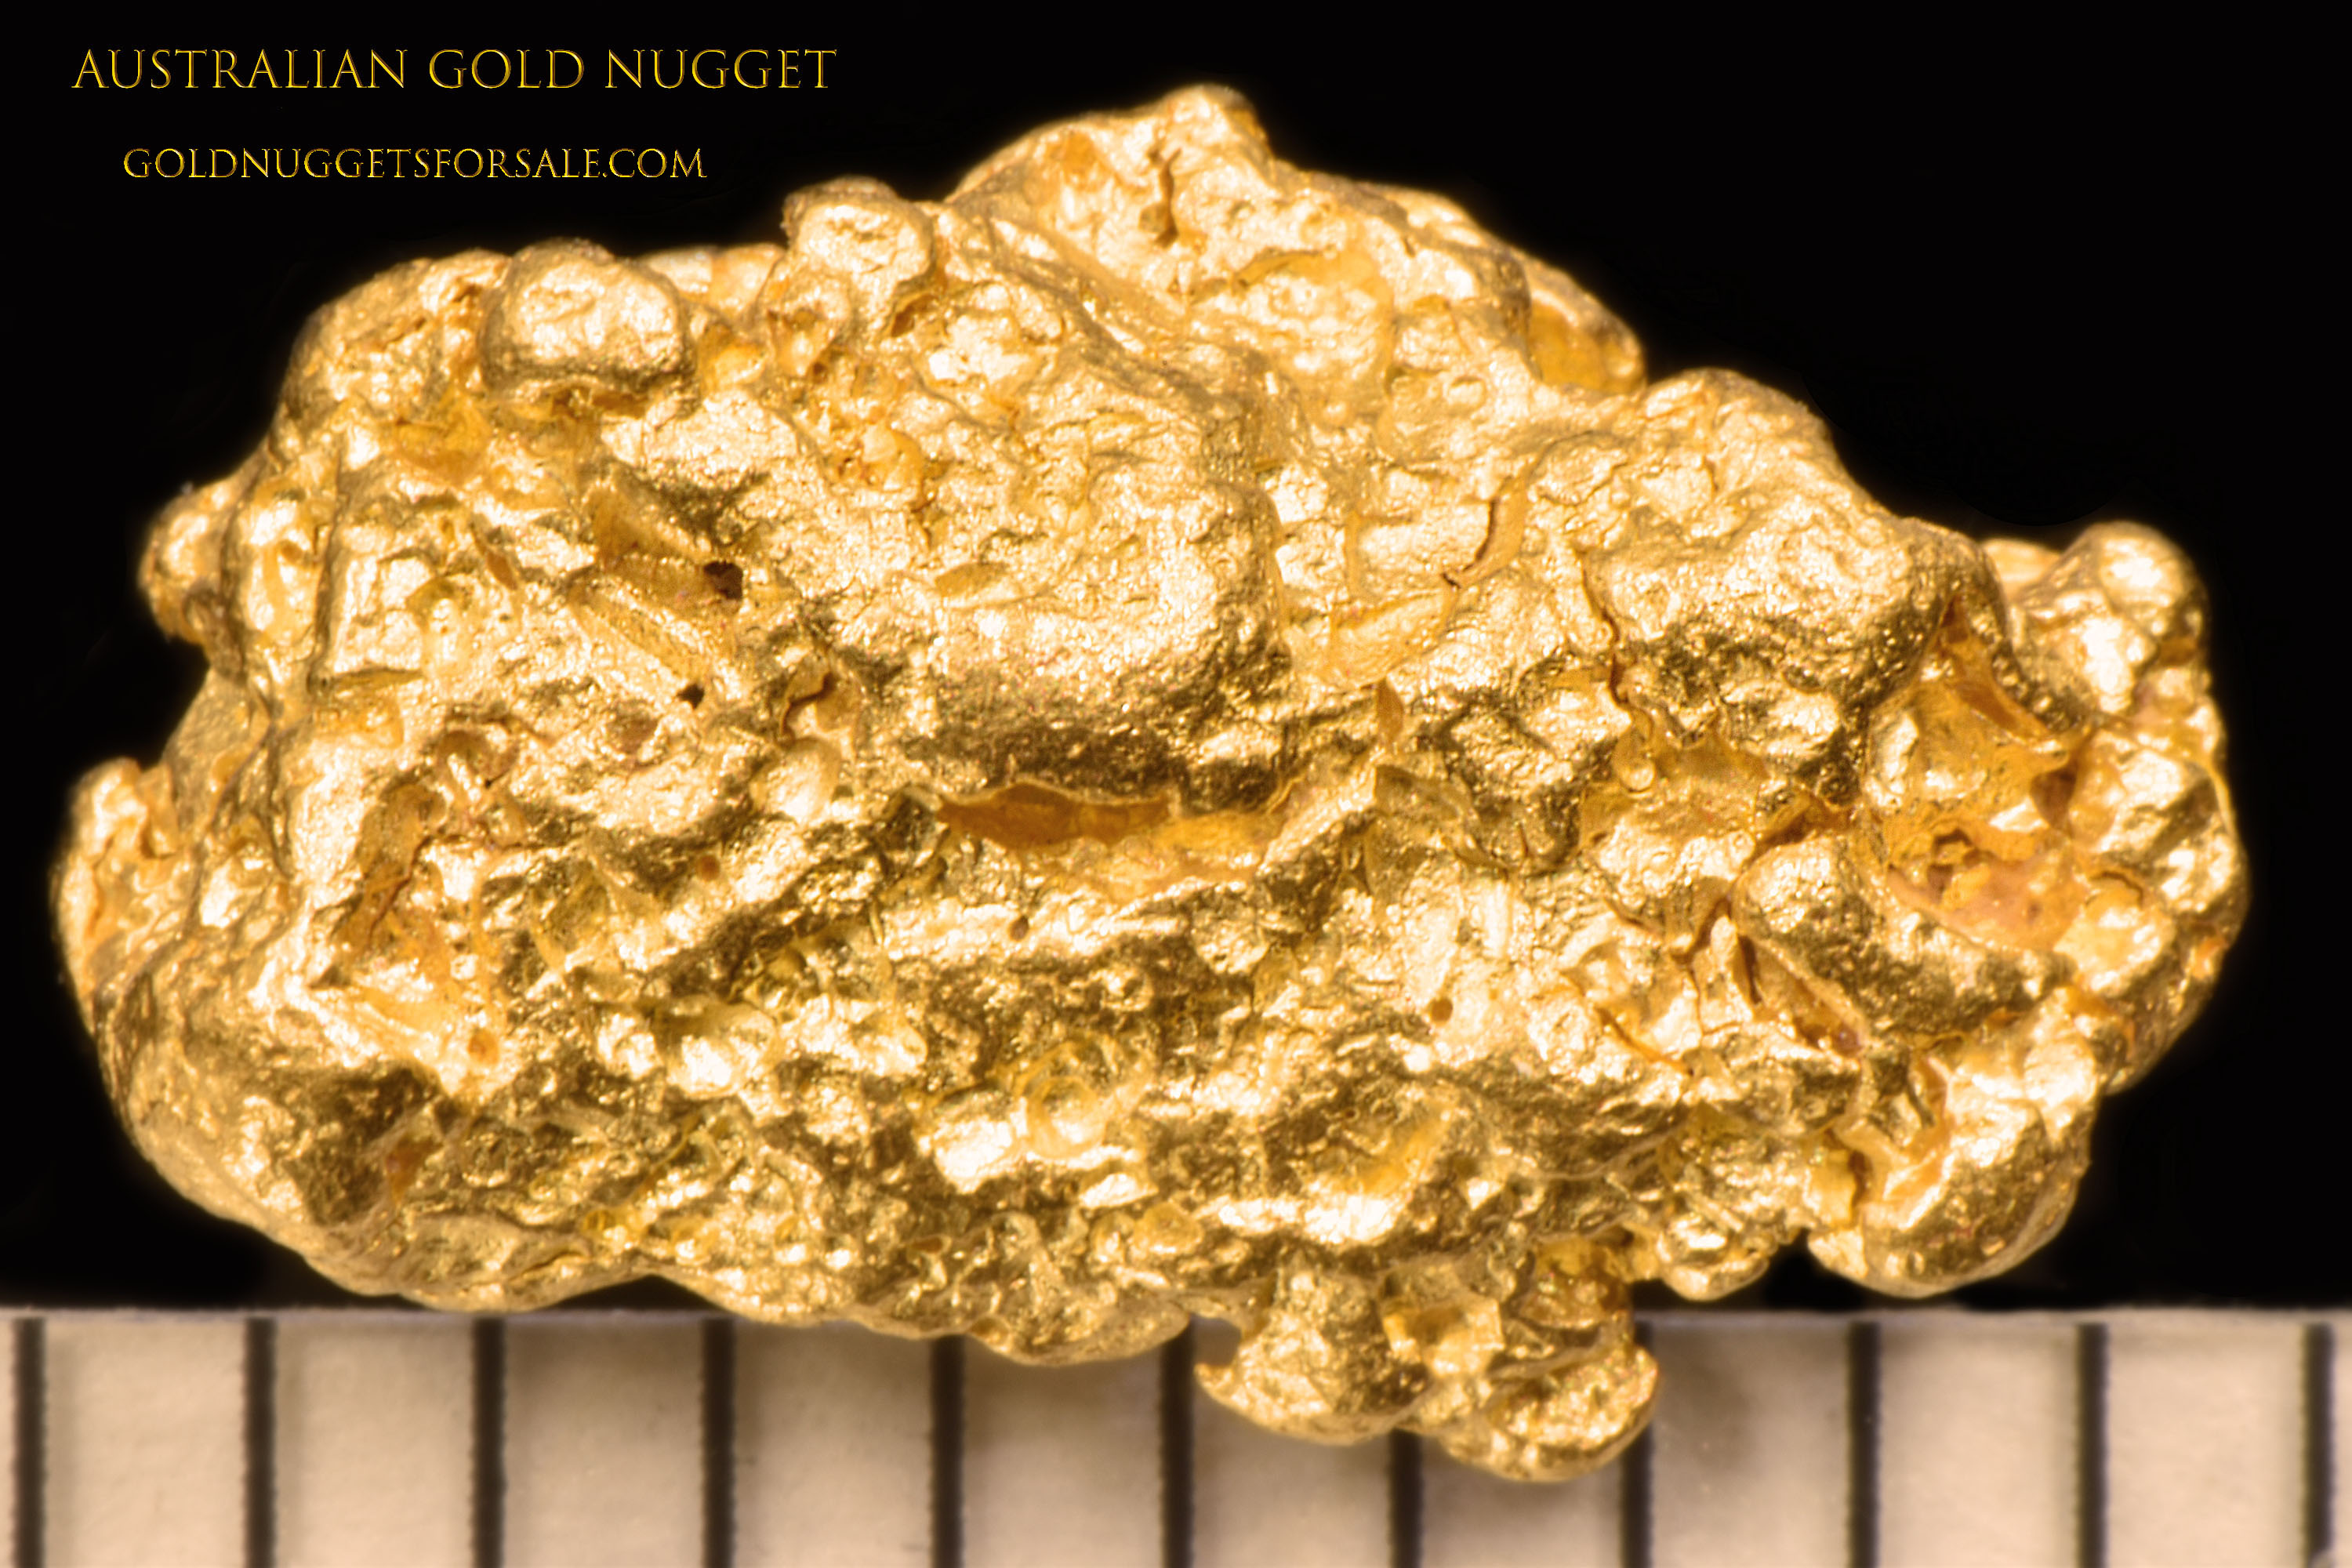 Detailed and Exquisite - Australian Gold Nugget